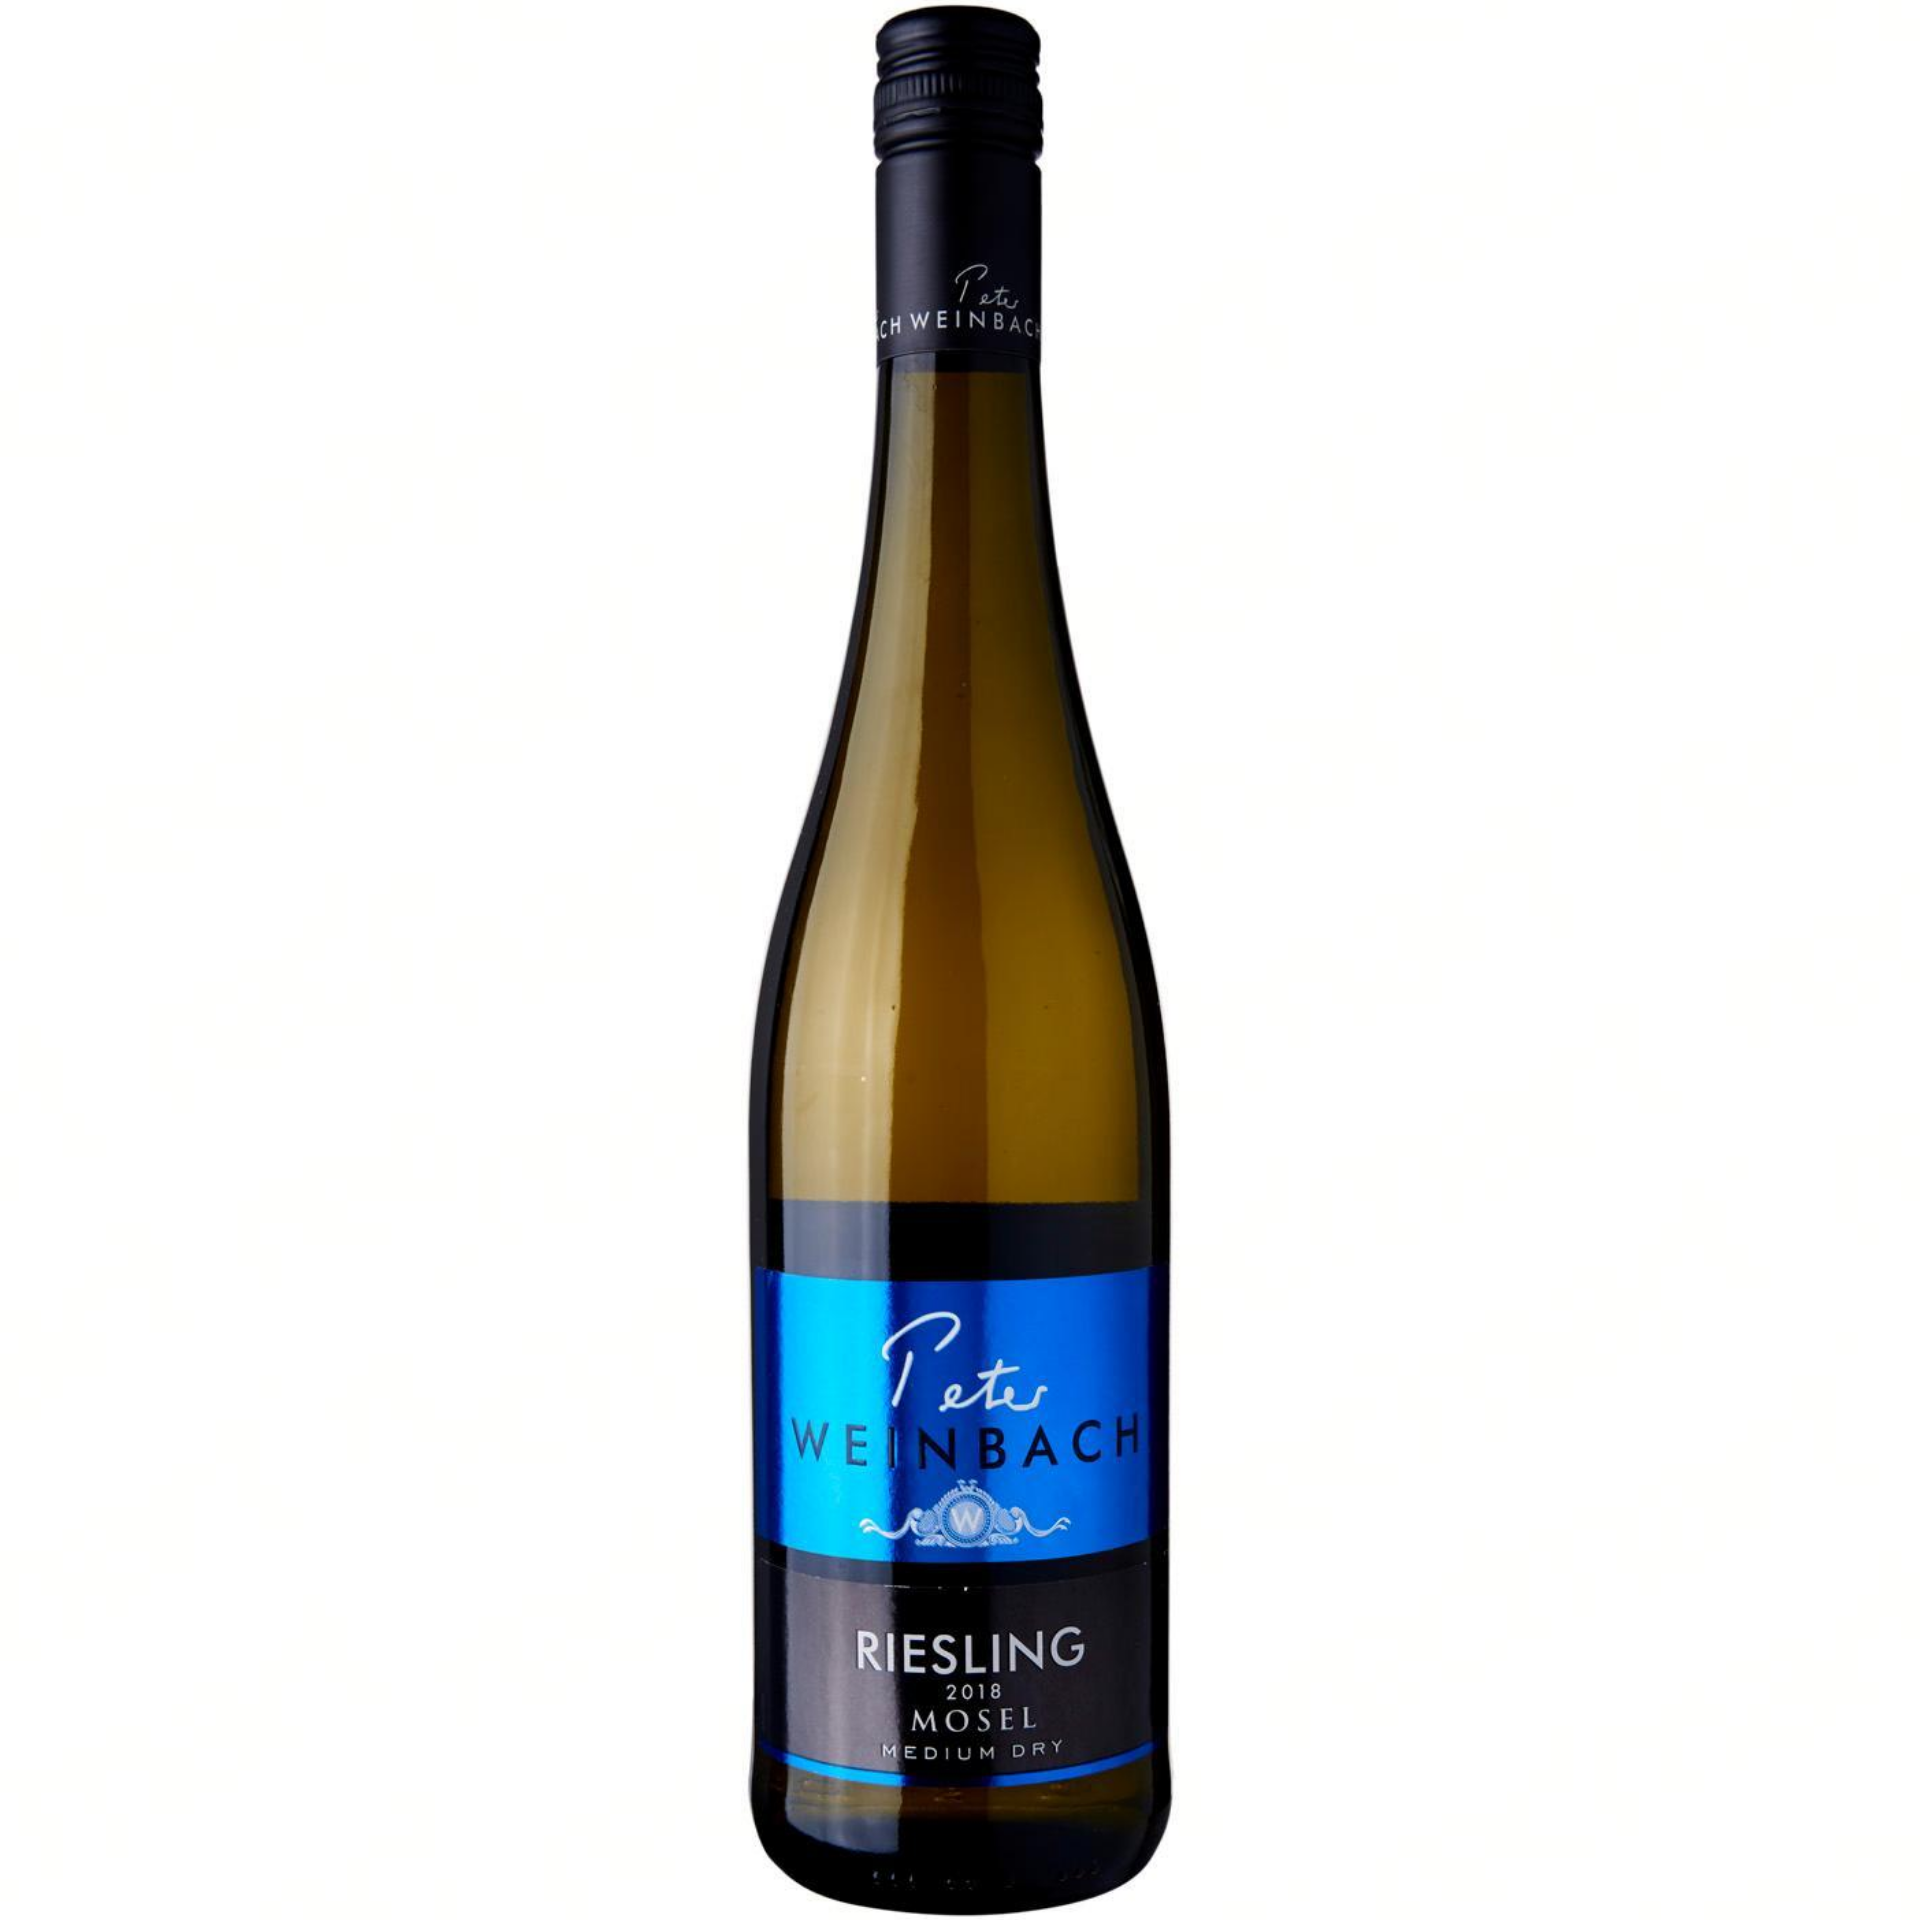 Peter Weinbach Riesling Medium Dry 2019 750ml